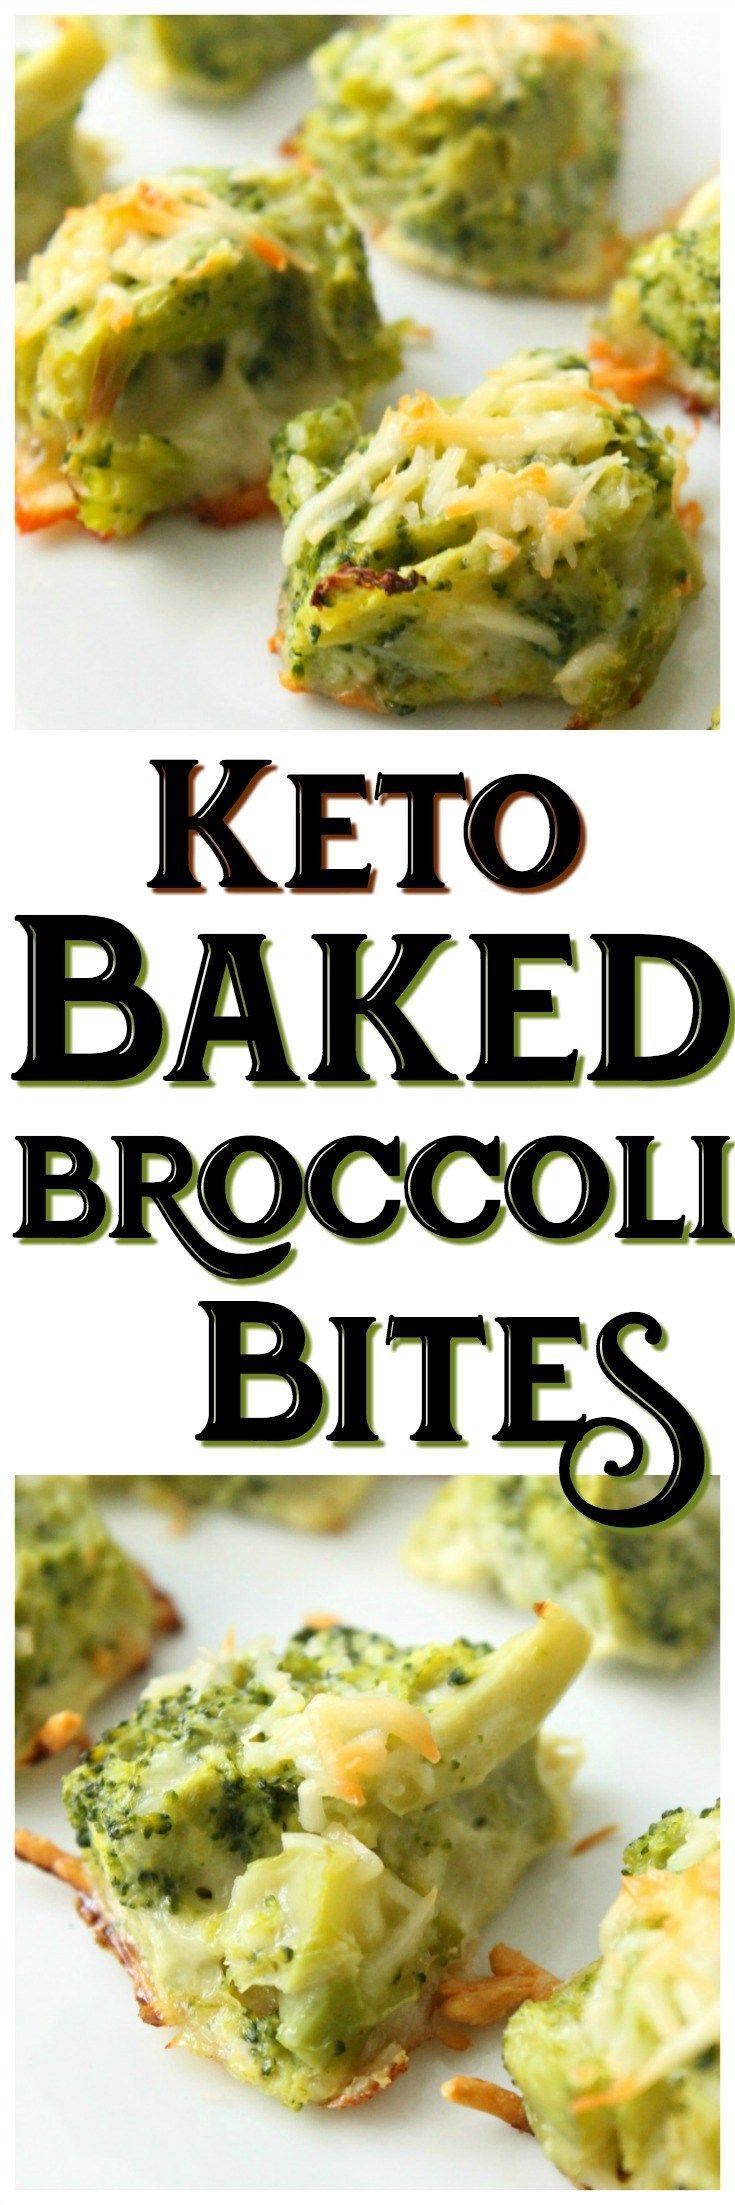 Check out these Keto Friendly Healthy Baked Broccoli Bites - SO delicious and easy to make, plus they are great for meal prep to eat on all week long!